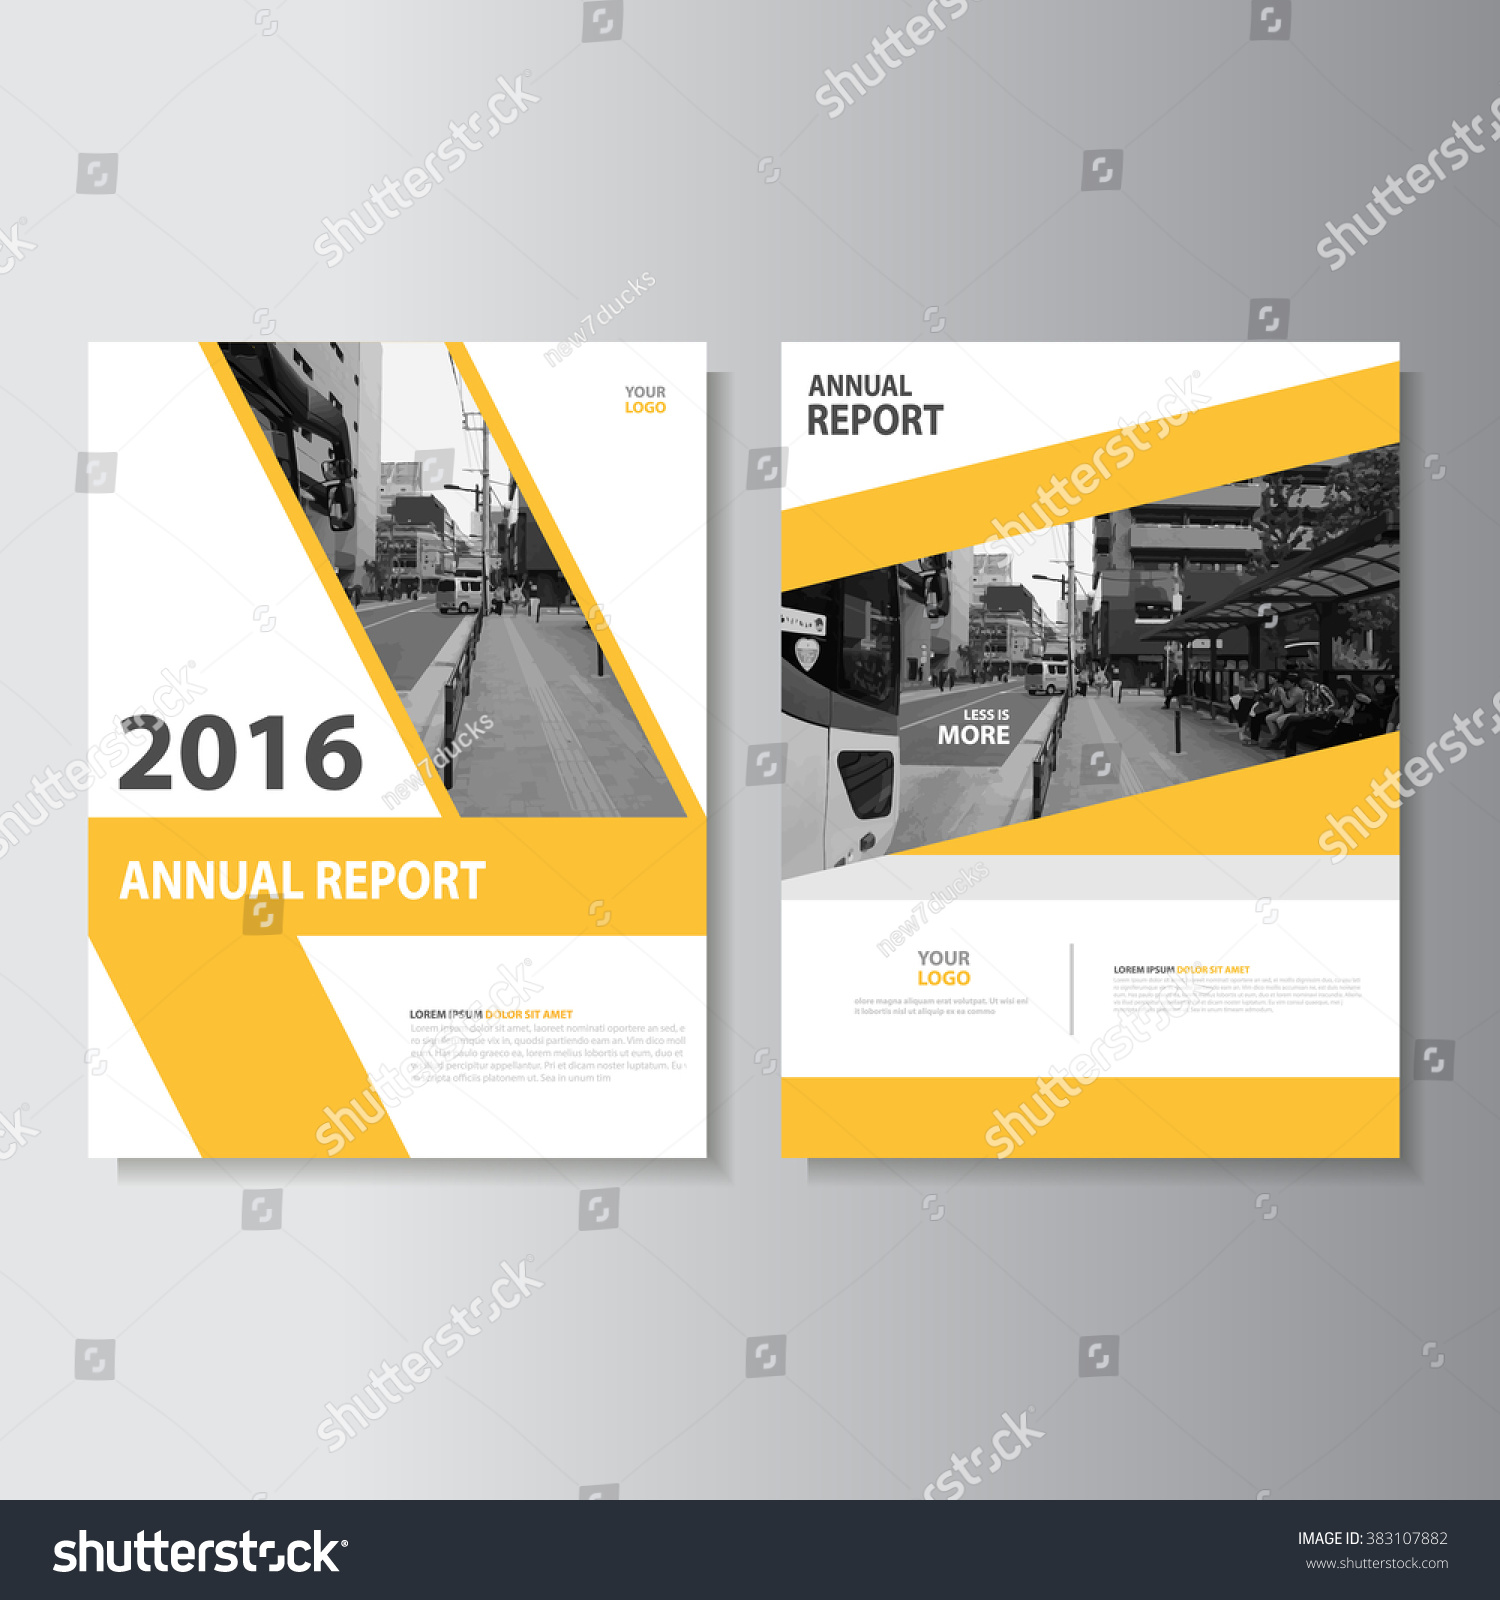 yellow annual report leaflet brochure flyer stock vector  yellow annual report leaflet brochure flyer template a4 size design book cover layout design